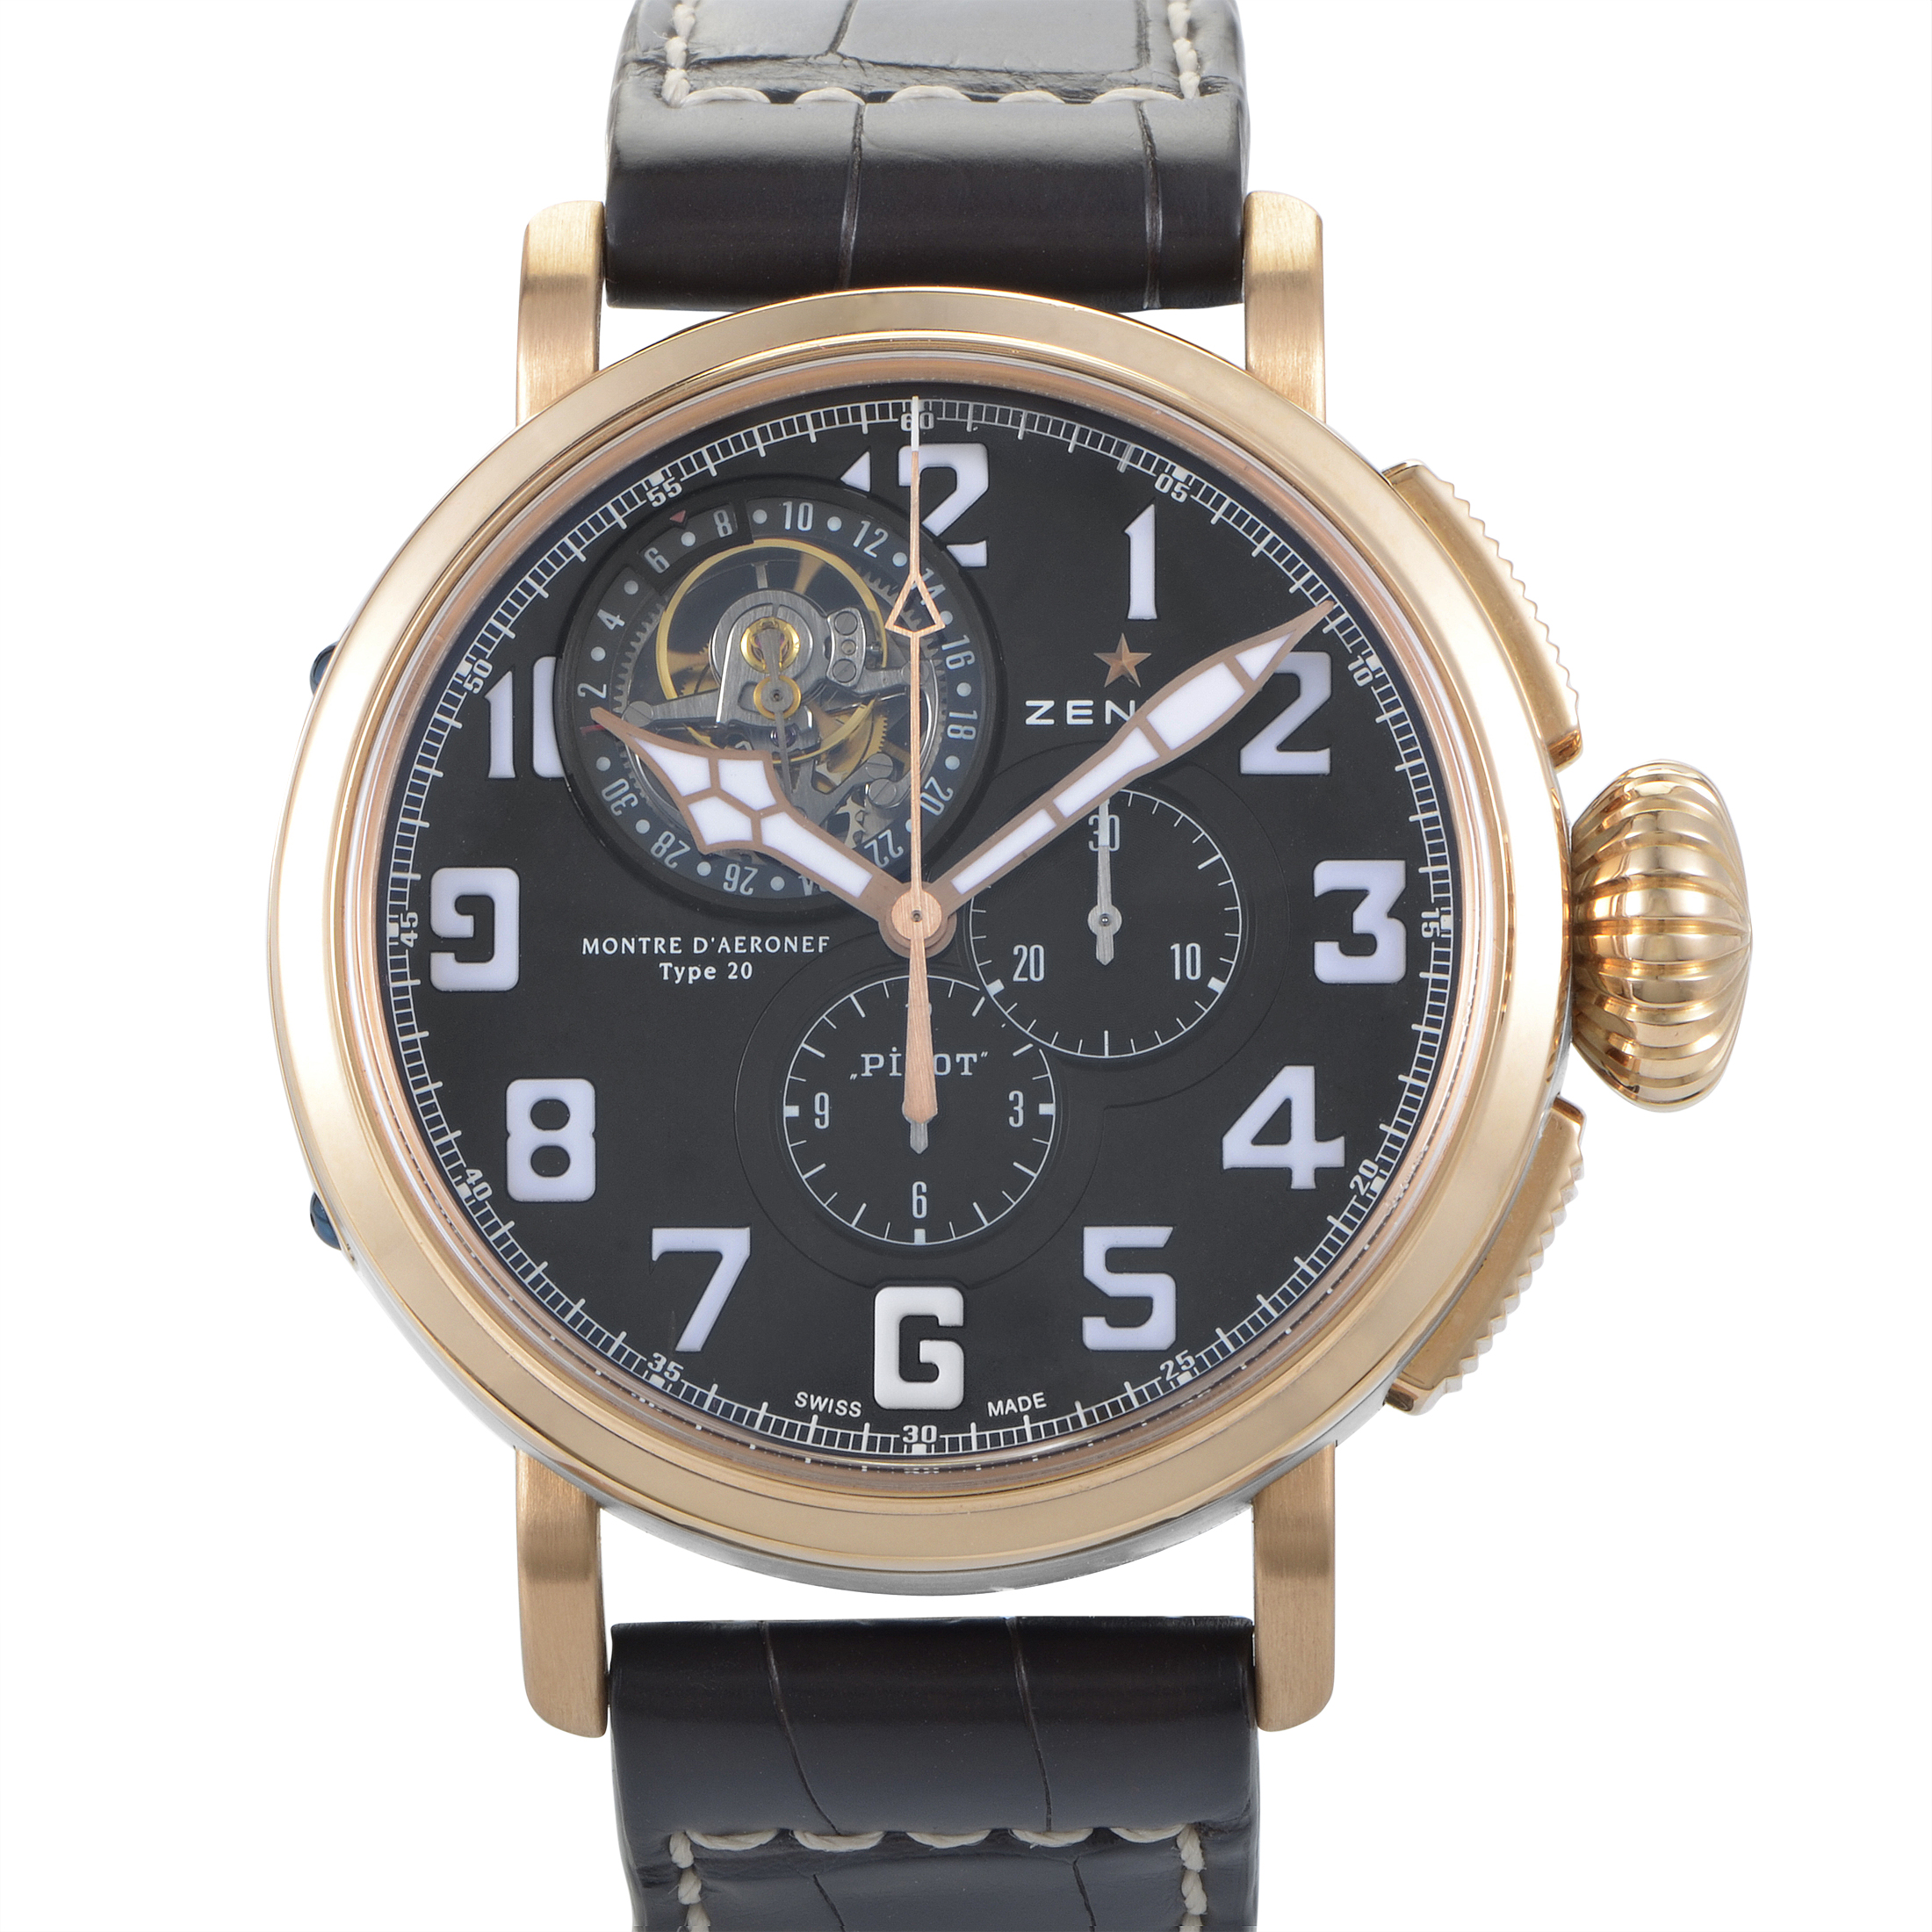 Montre d'Aeronef Type 20 Tourbillon Men's Watch 87.2430.4035/21.C721